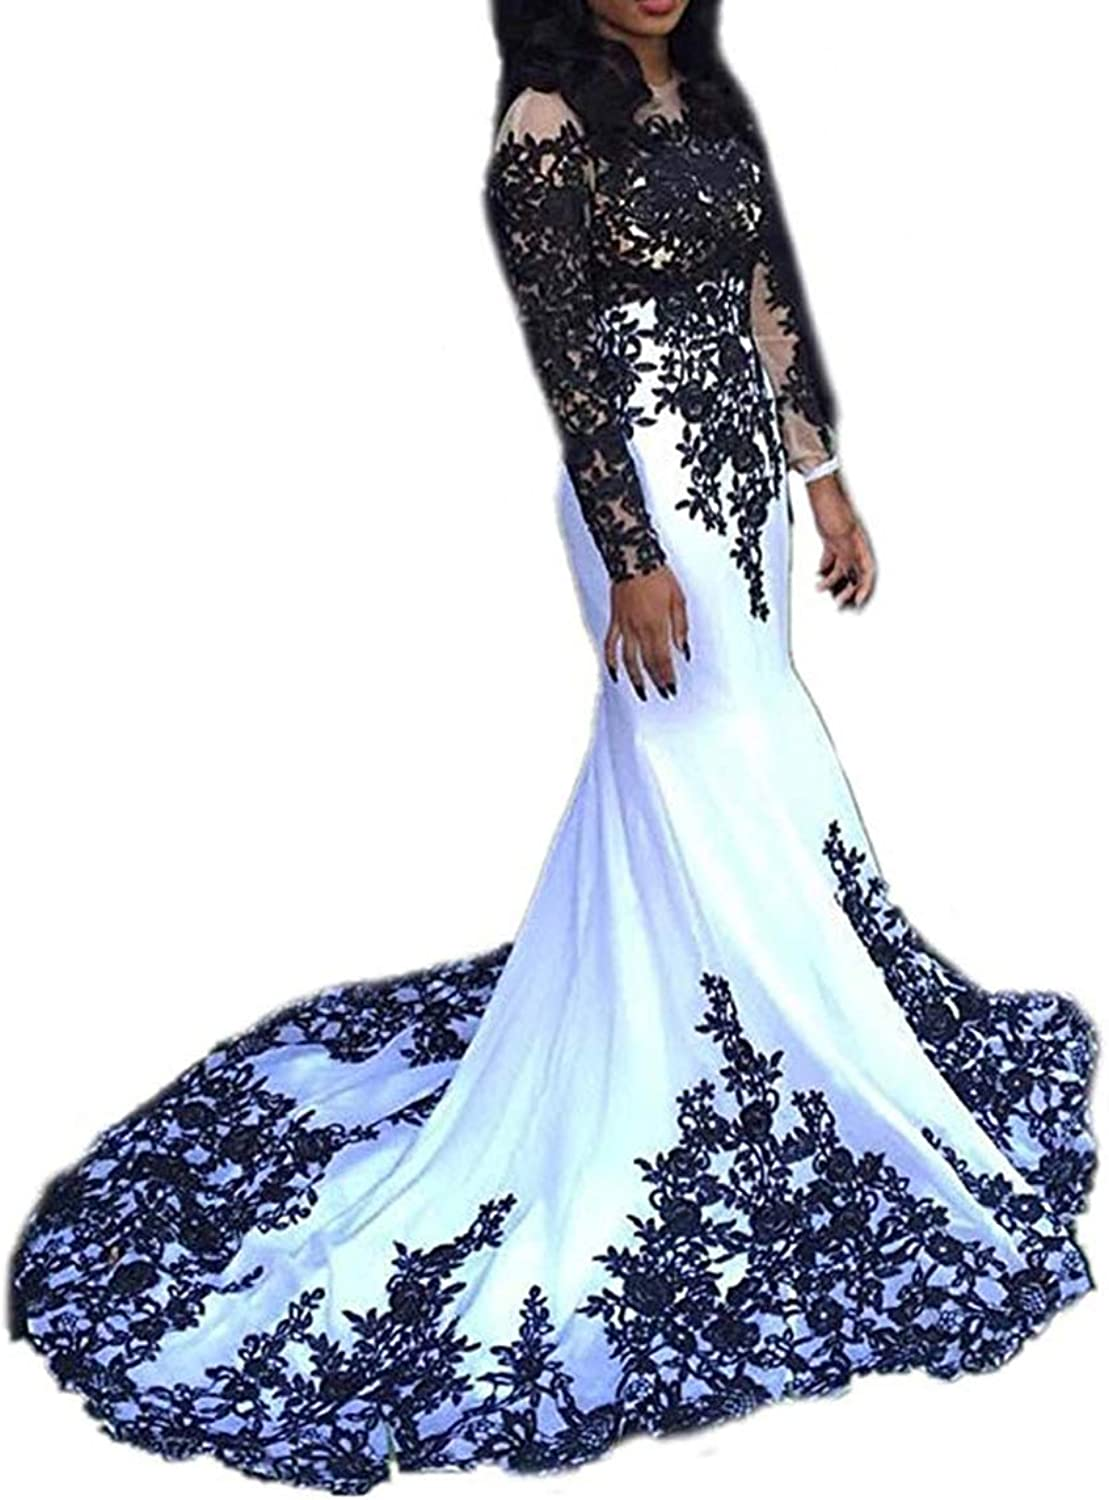 Ri Yun Women's Long Sleeves Lace Prom Dresses 2019 Mermaid Sexy Formal Evening Ball Gowns with Black Lace Appliques